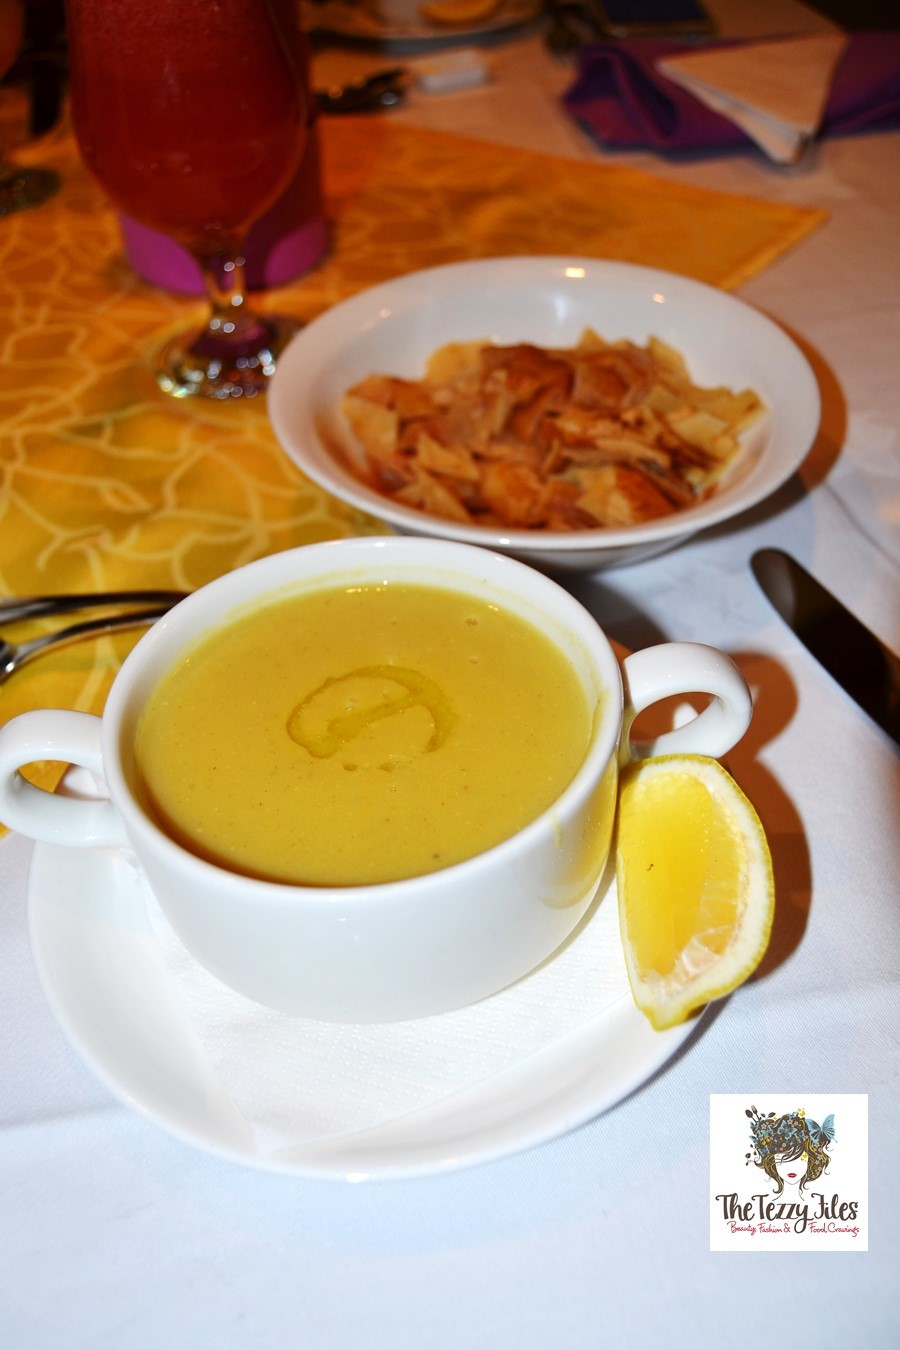 Tal Al Amar lebanese restaurant dubai review arabic authentic food (7)